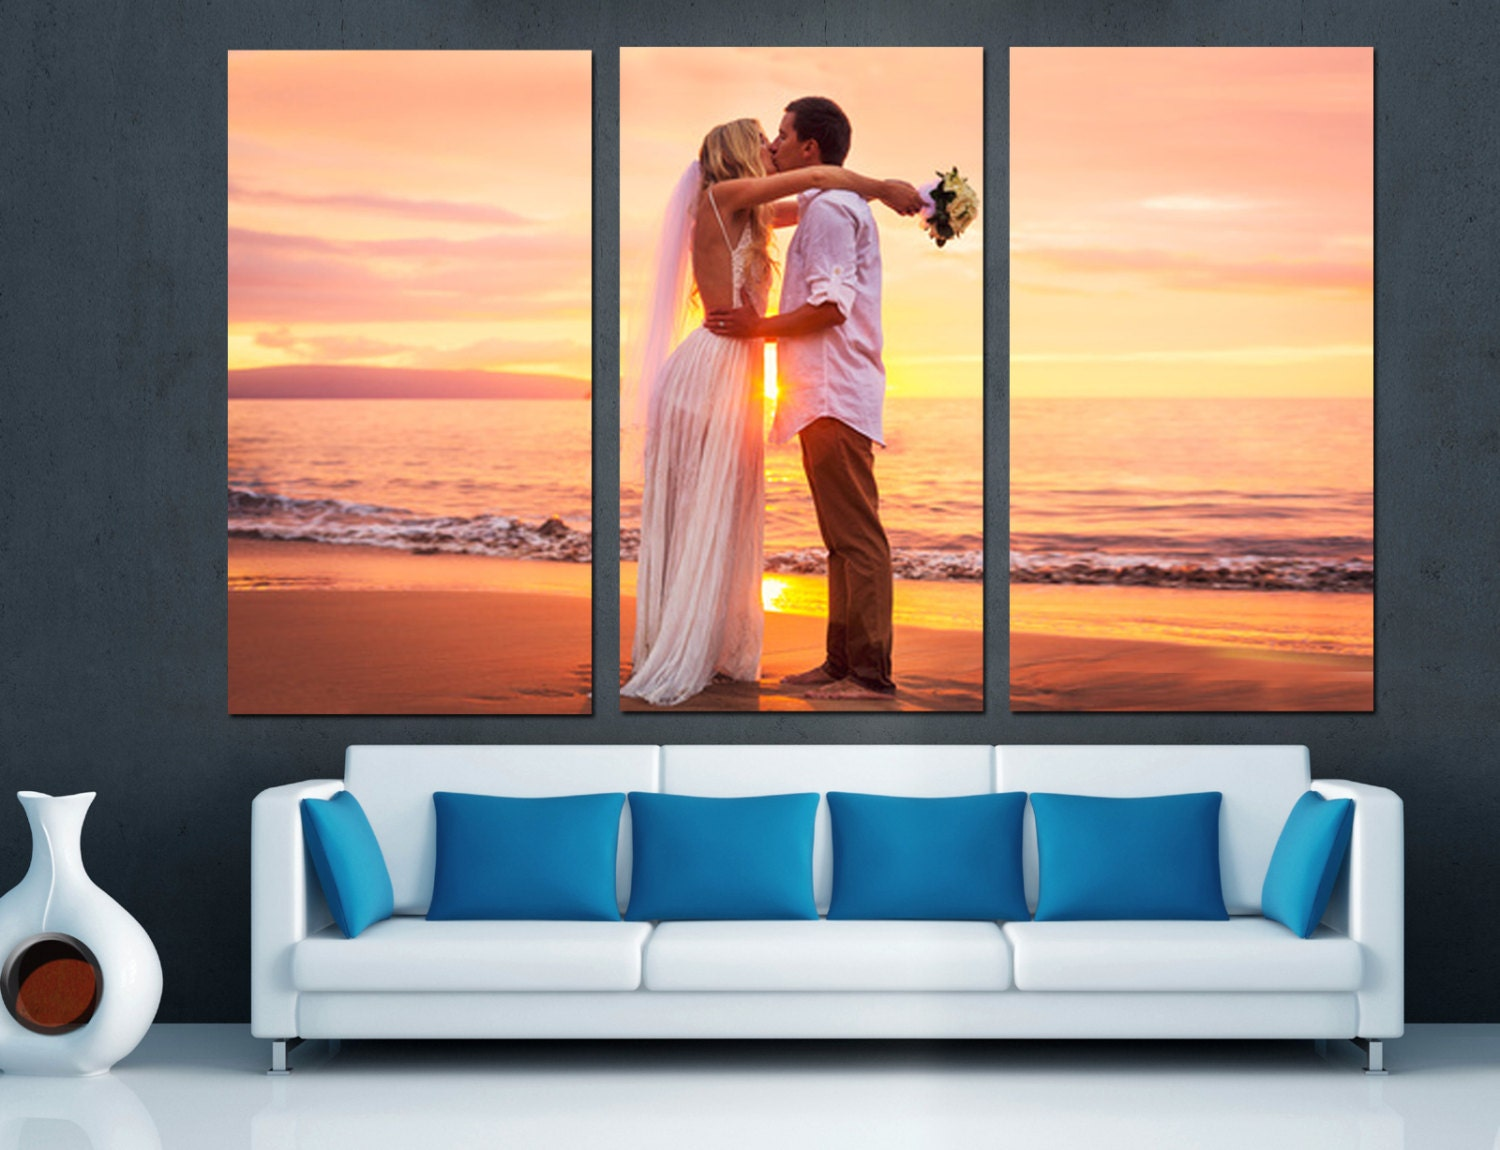 canvas split wedding anniversary gift for couples from photos